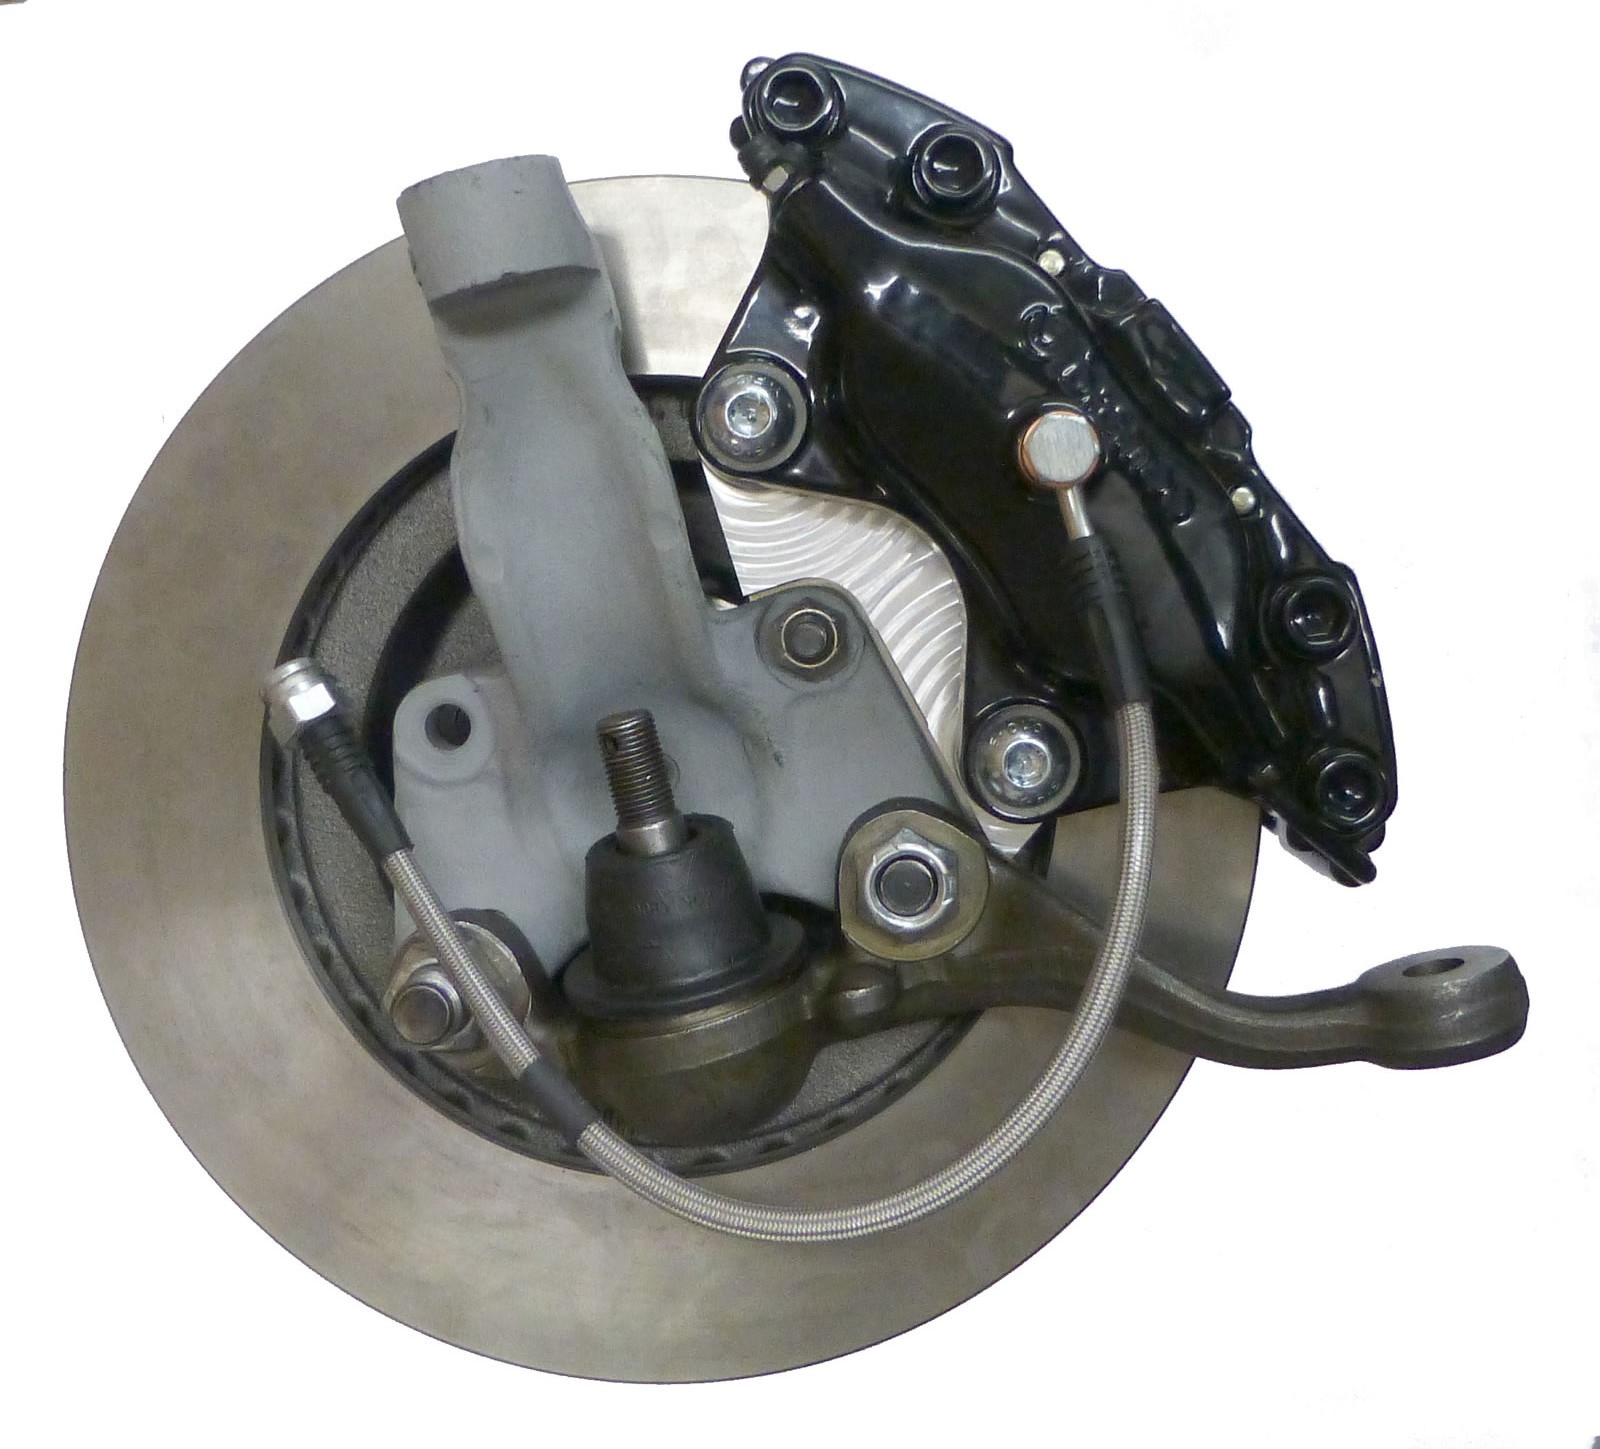 viper caliper on drum knuckle caliper knuckle and ball joint not included